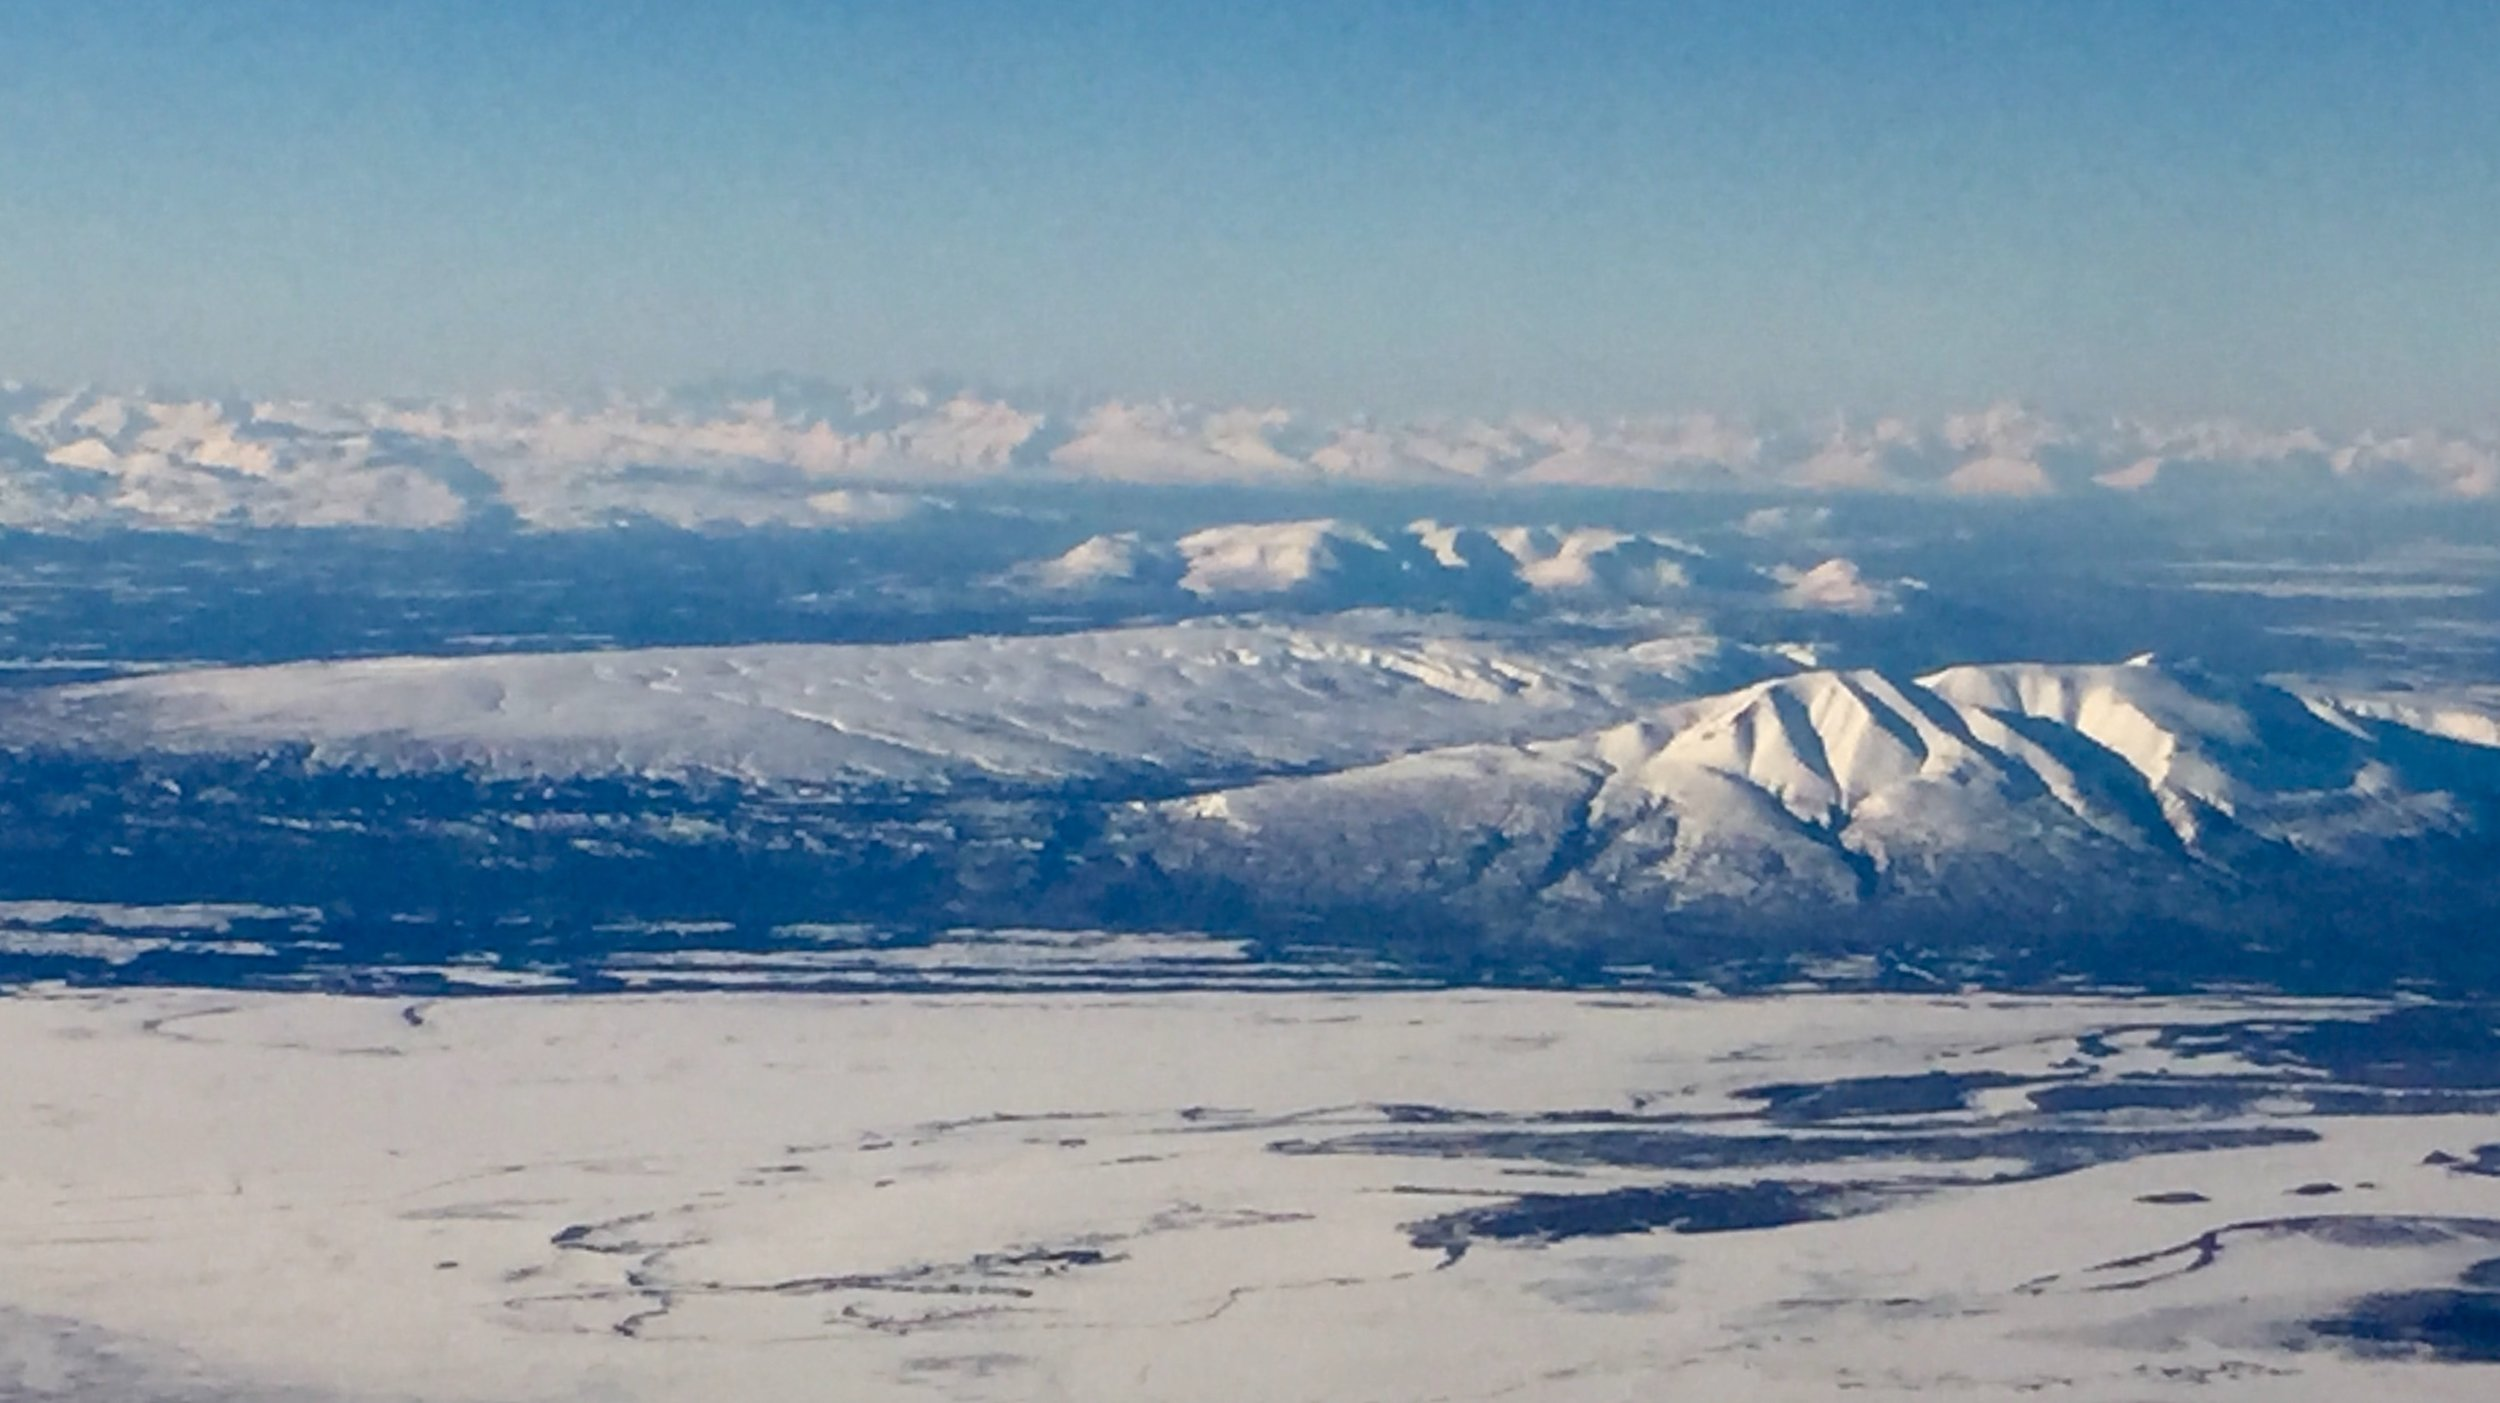 Alaska ice+mountains from air.jpg